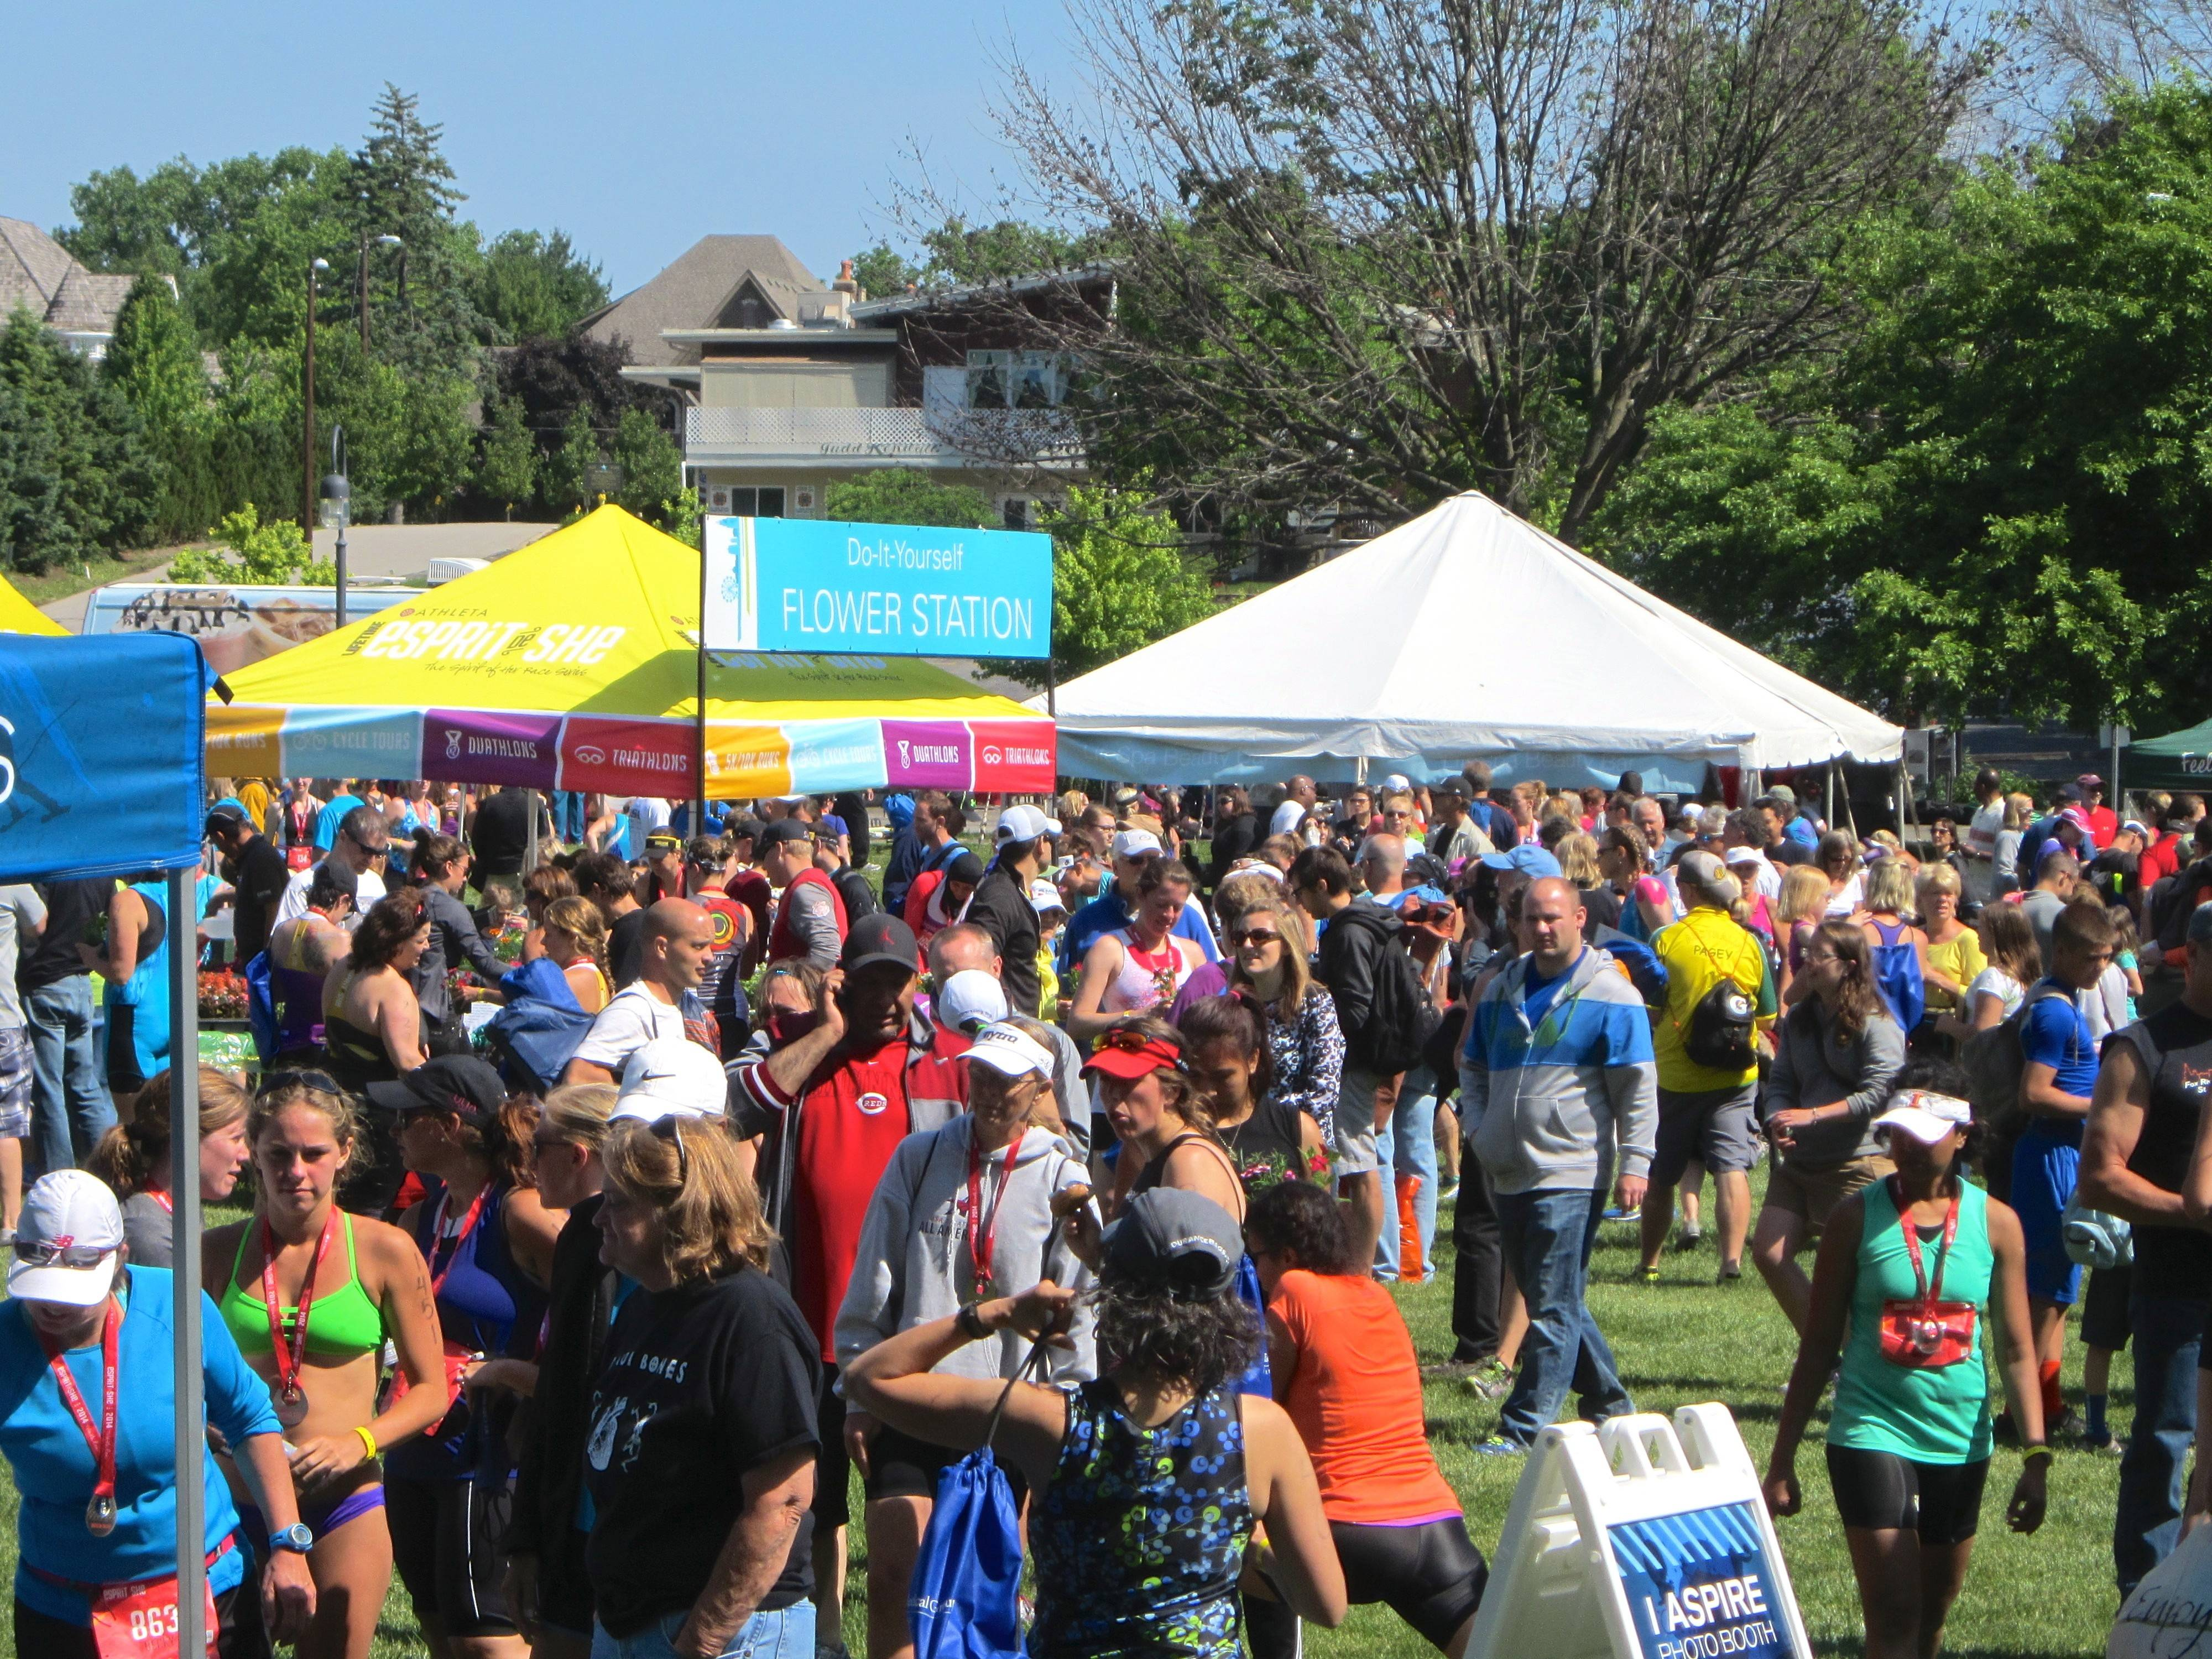 The annual Esprit de She Triathlon in Naperville brought a big crowd of athletes and supporters to Centennial Beach on Sunday. The event featured a half-mile swim, 13.3-mile bike ride and 3.1-mile run.